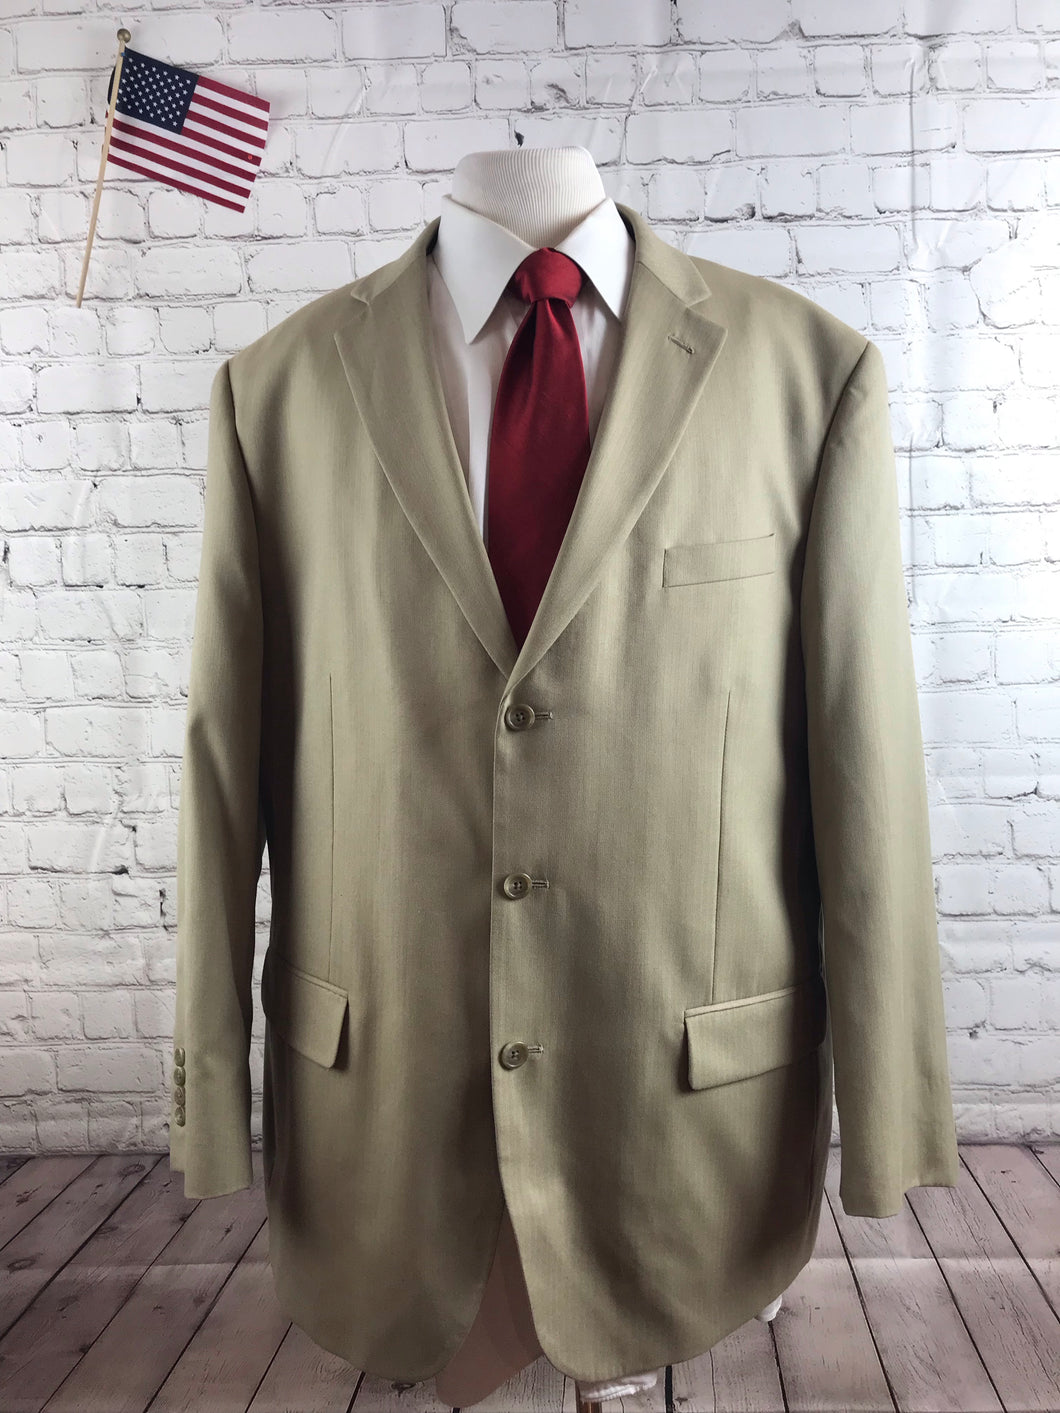 Stafford Men's Beige Stripe Blazer 46R $315